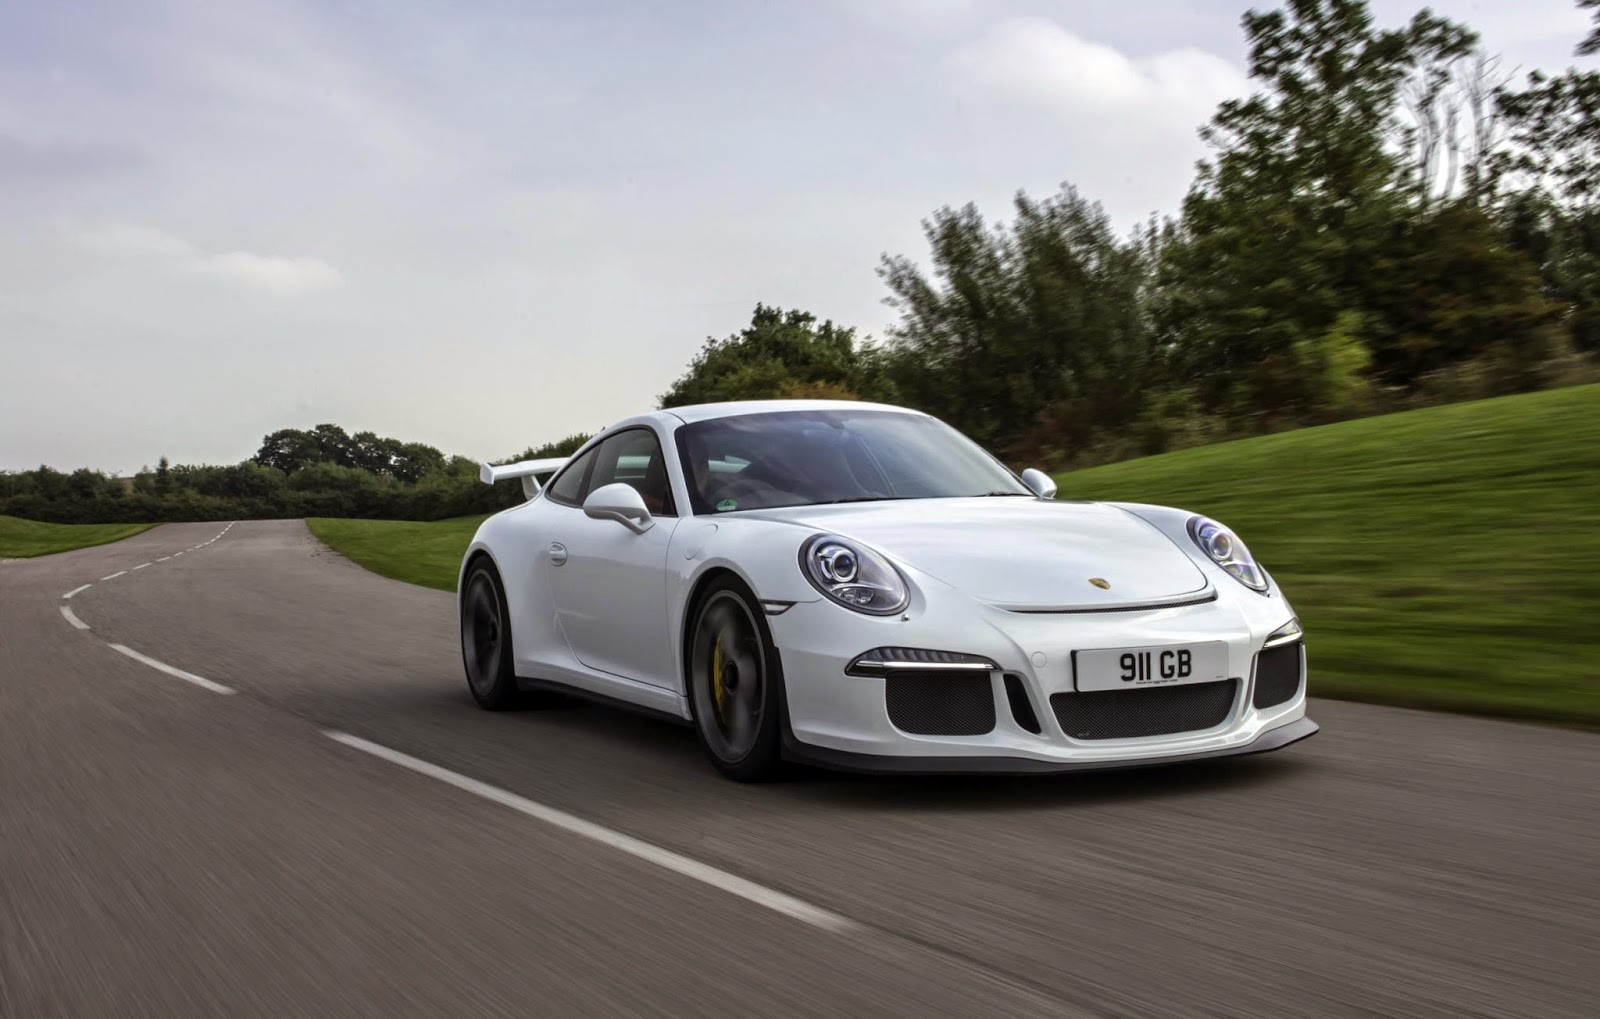 Genial The Porsche 911 Range Starts At £70,000 For The Carrera And Goes All The  Way Up To £150,000 For The Turbo S Cabriolet. It Would Be Easy To Fill  Every Price ...